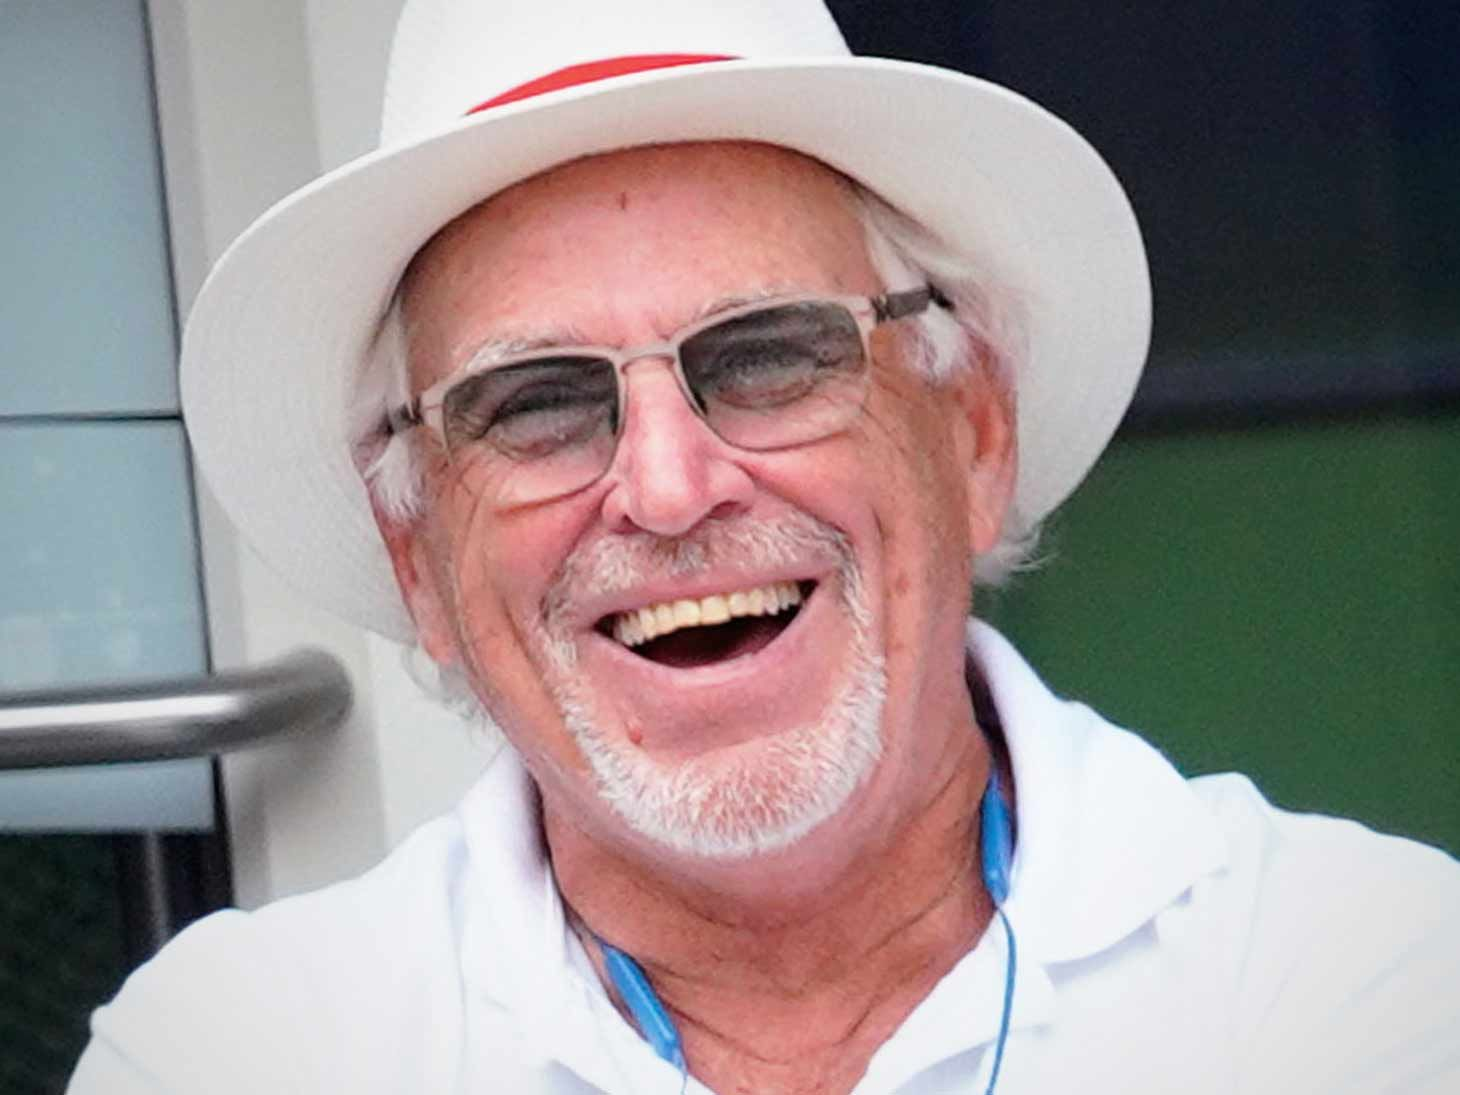 Jimmy Buffett Off the Hook in Lawsuit Over Concert Accident